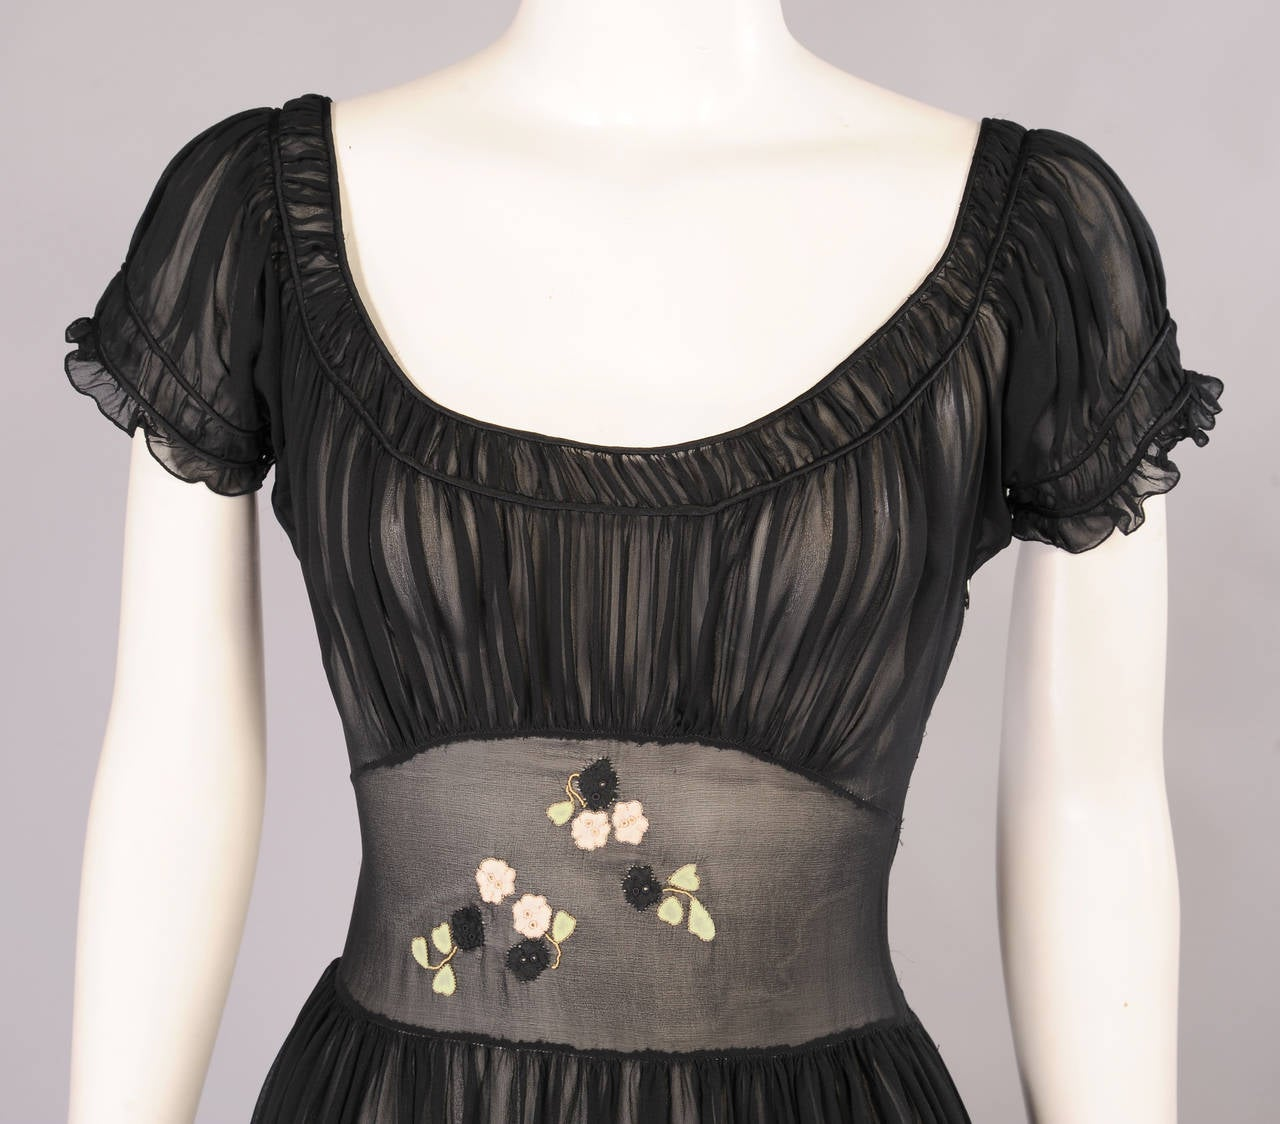 Sheer black silk chiffon is appliqued with pink and black flowers and green leaves. The bodice is gathered at the scoop neckline over a wide flat waistband. The skirt is gently gathered and there is a left side zipper. The dress appears to be